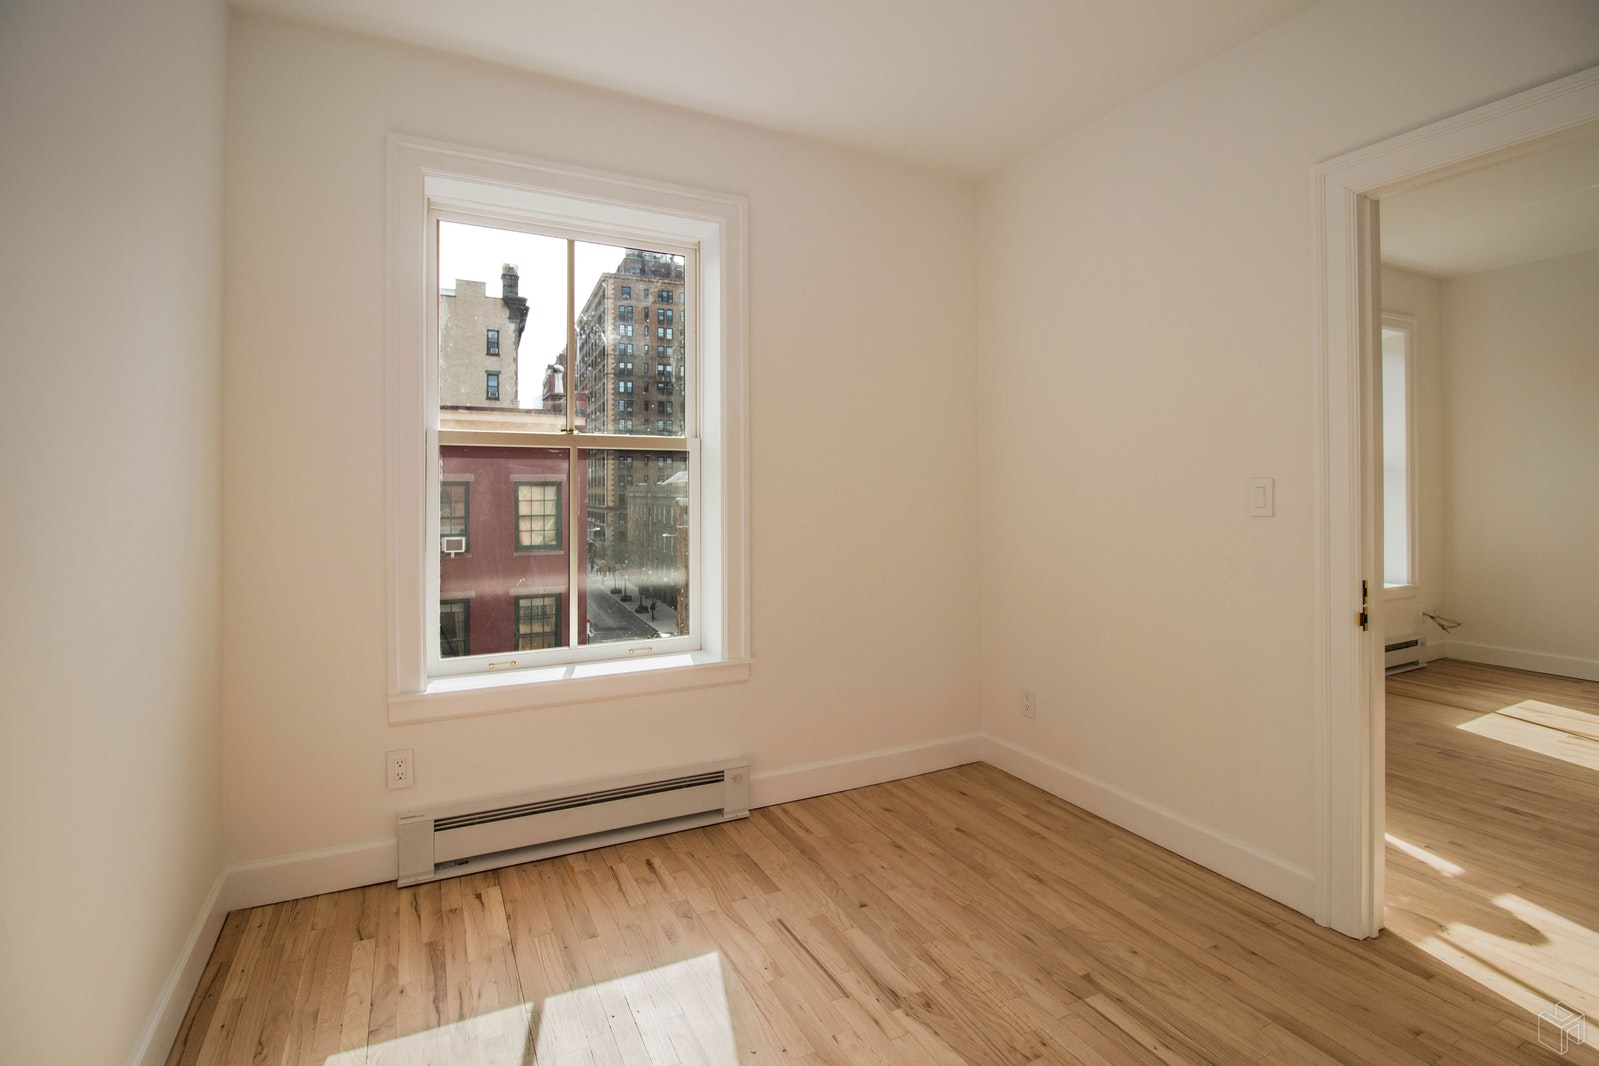 29 West 8th Street 3f, Greenwich Village, NYC, 10011, Price Not Disclosed, Rented Property, Halstead Real Estate, Photo 4